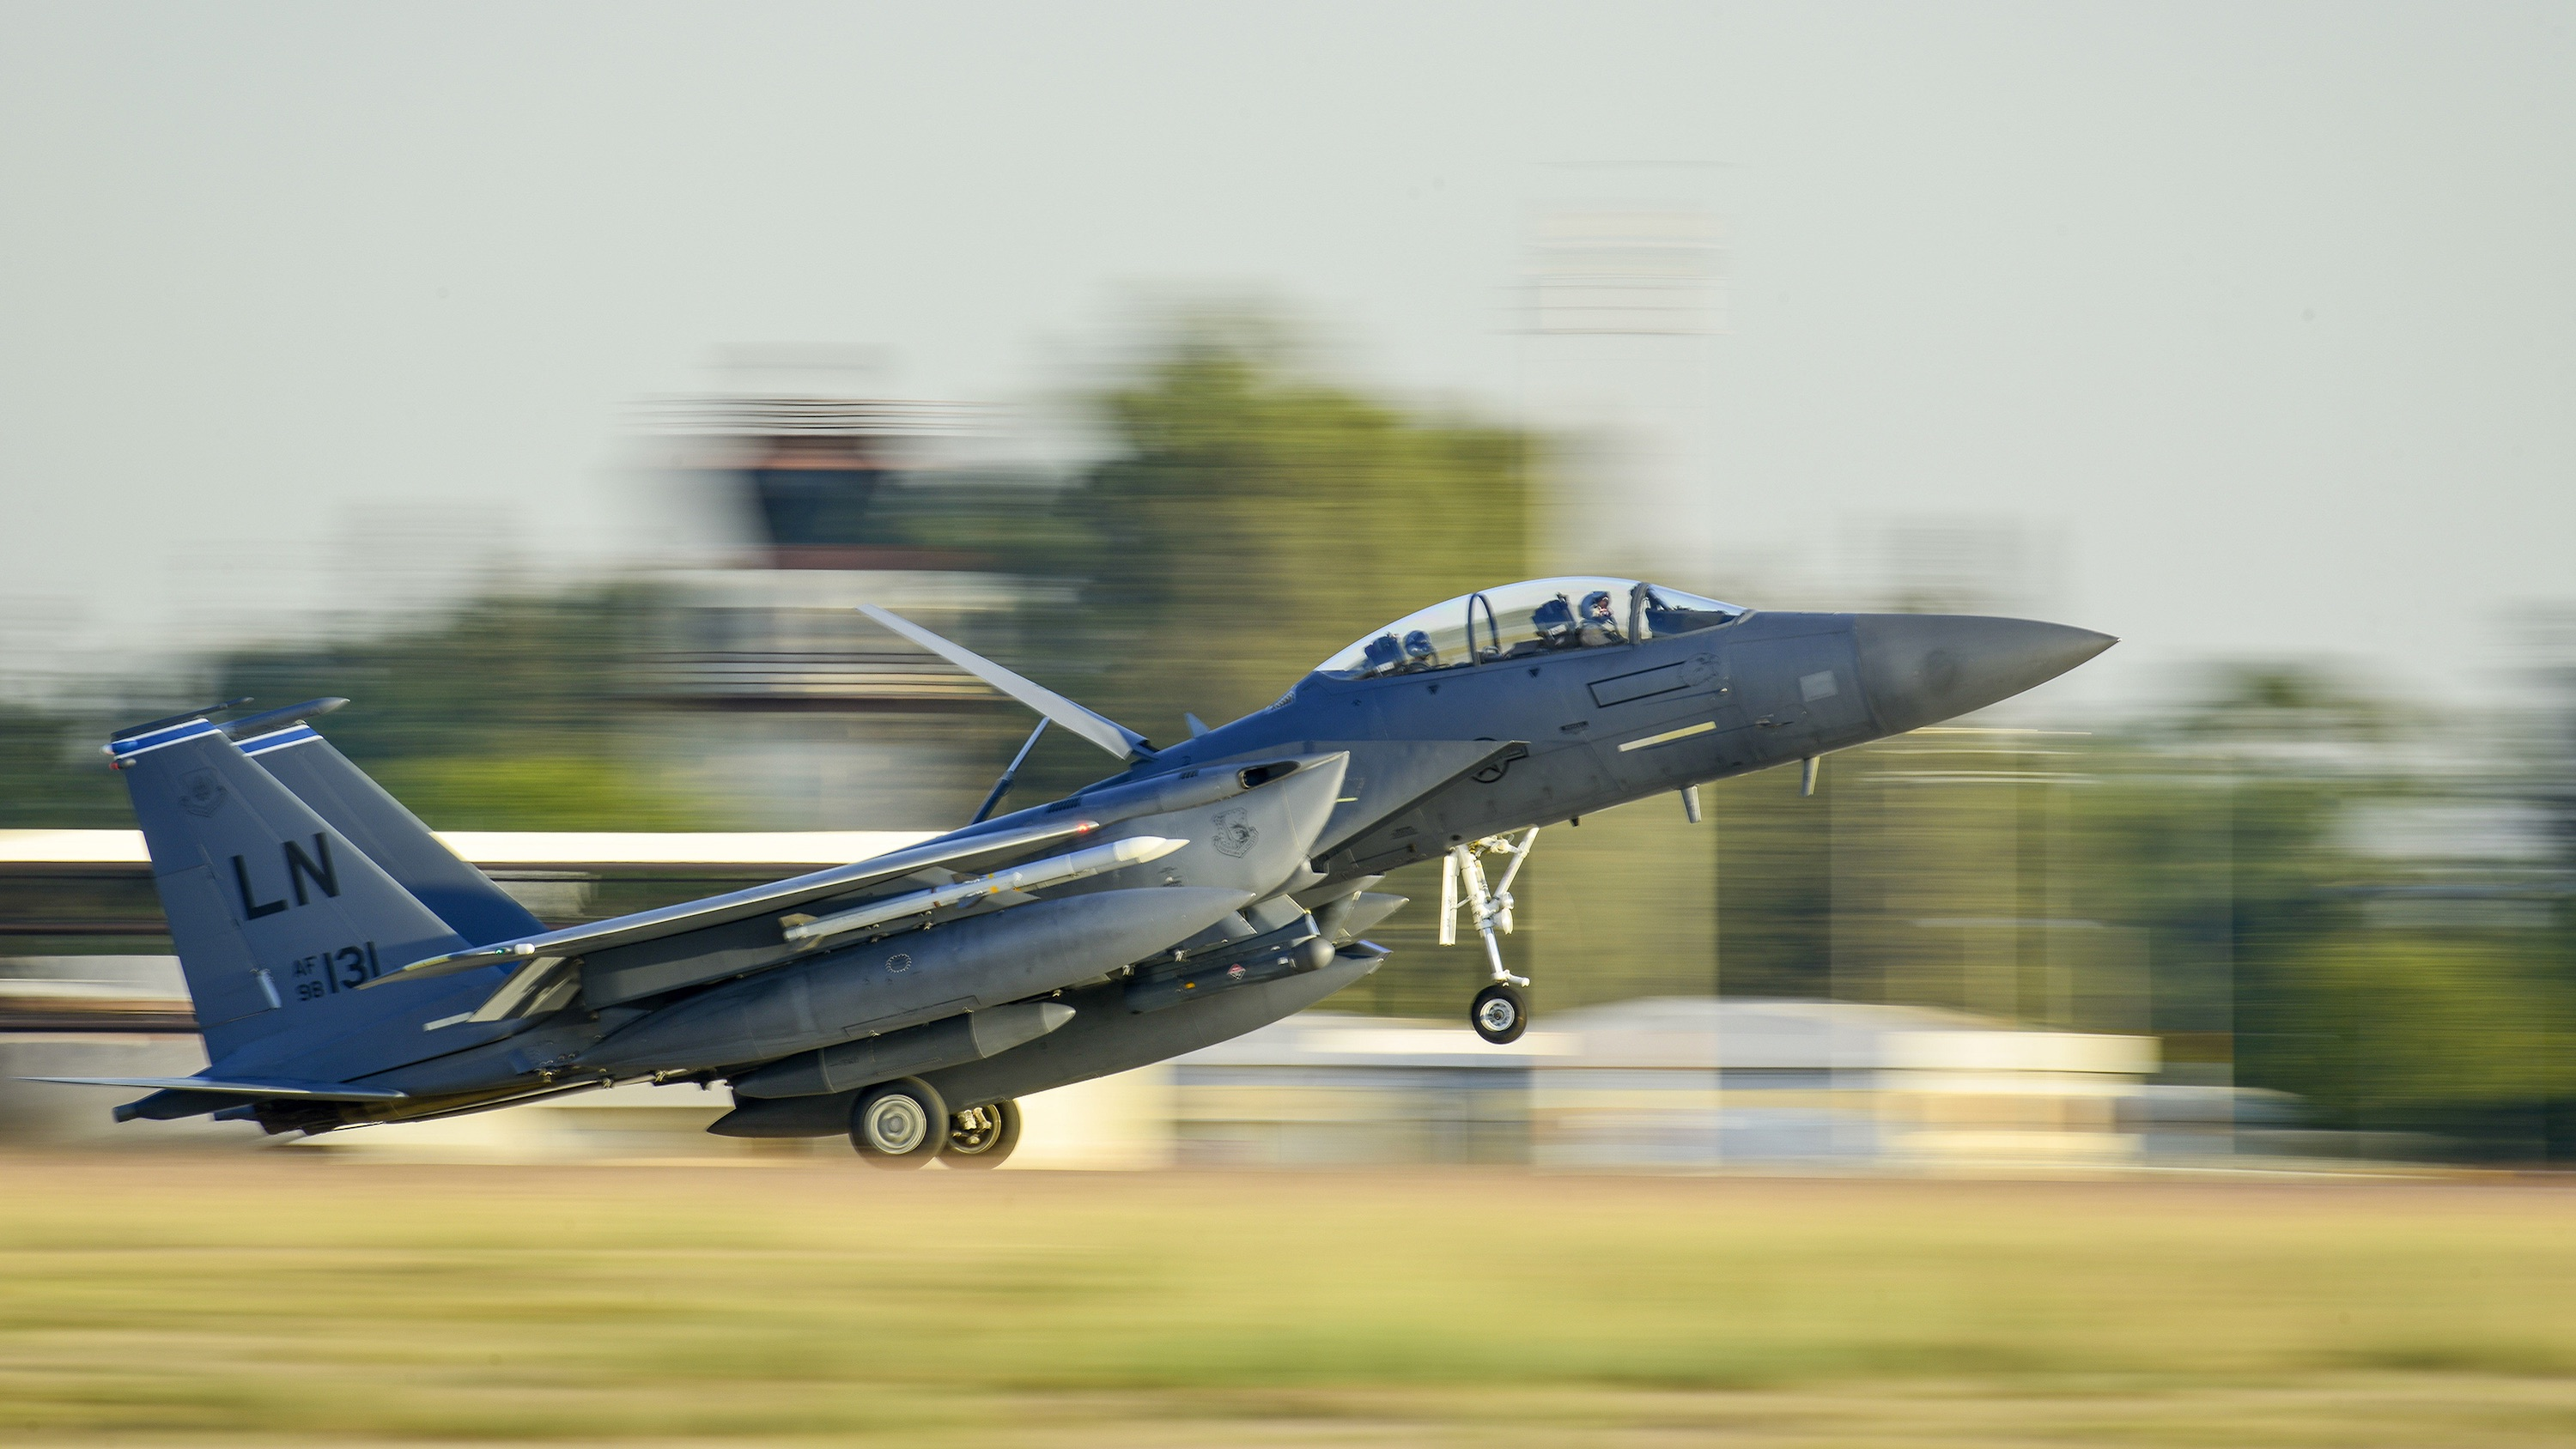 A US Air Force F-15E Strike Eagle from the 48th Fighter Wing lands at Incirlik Air Base, Turkey in Nov. 2015.